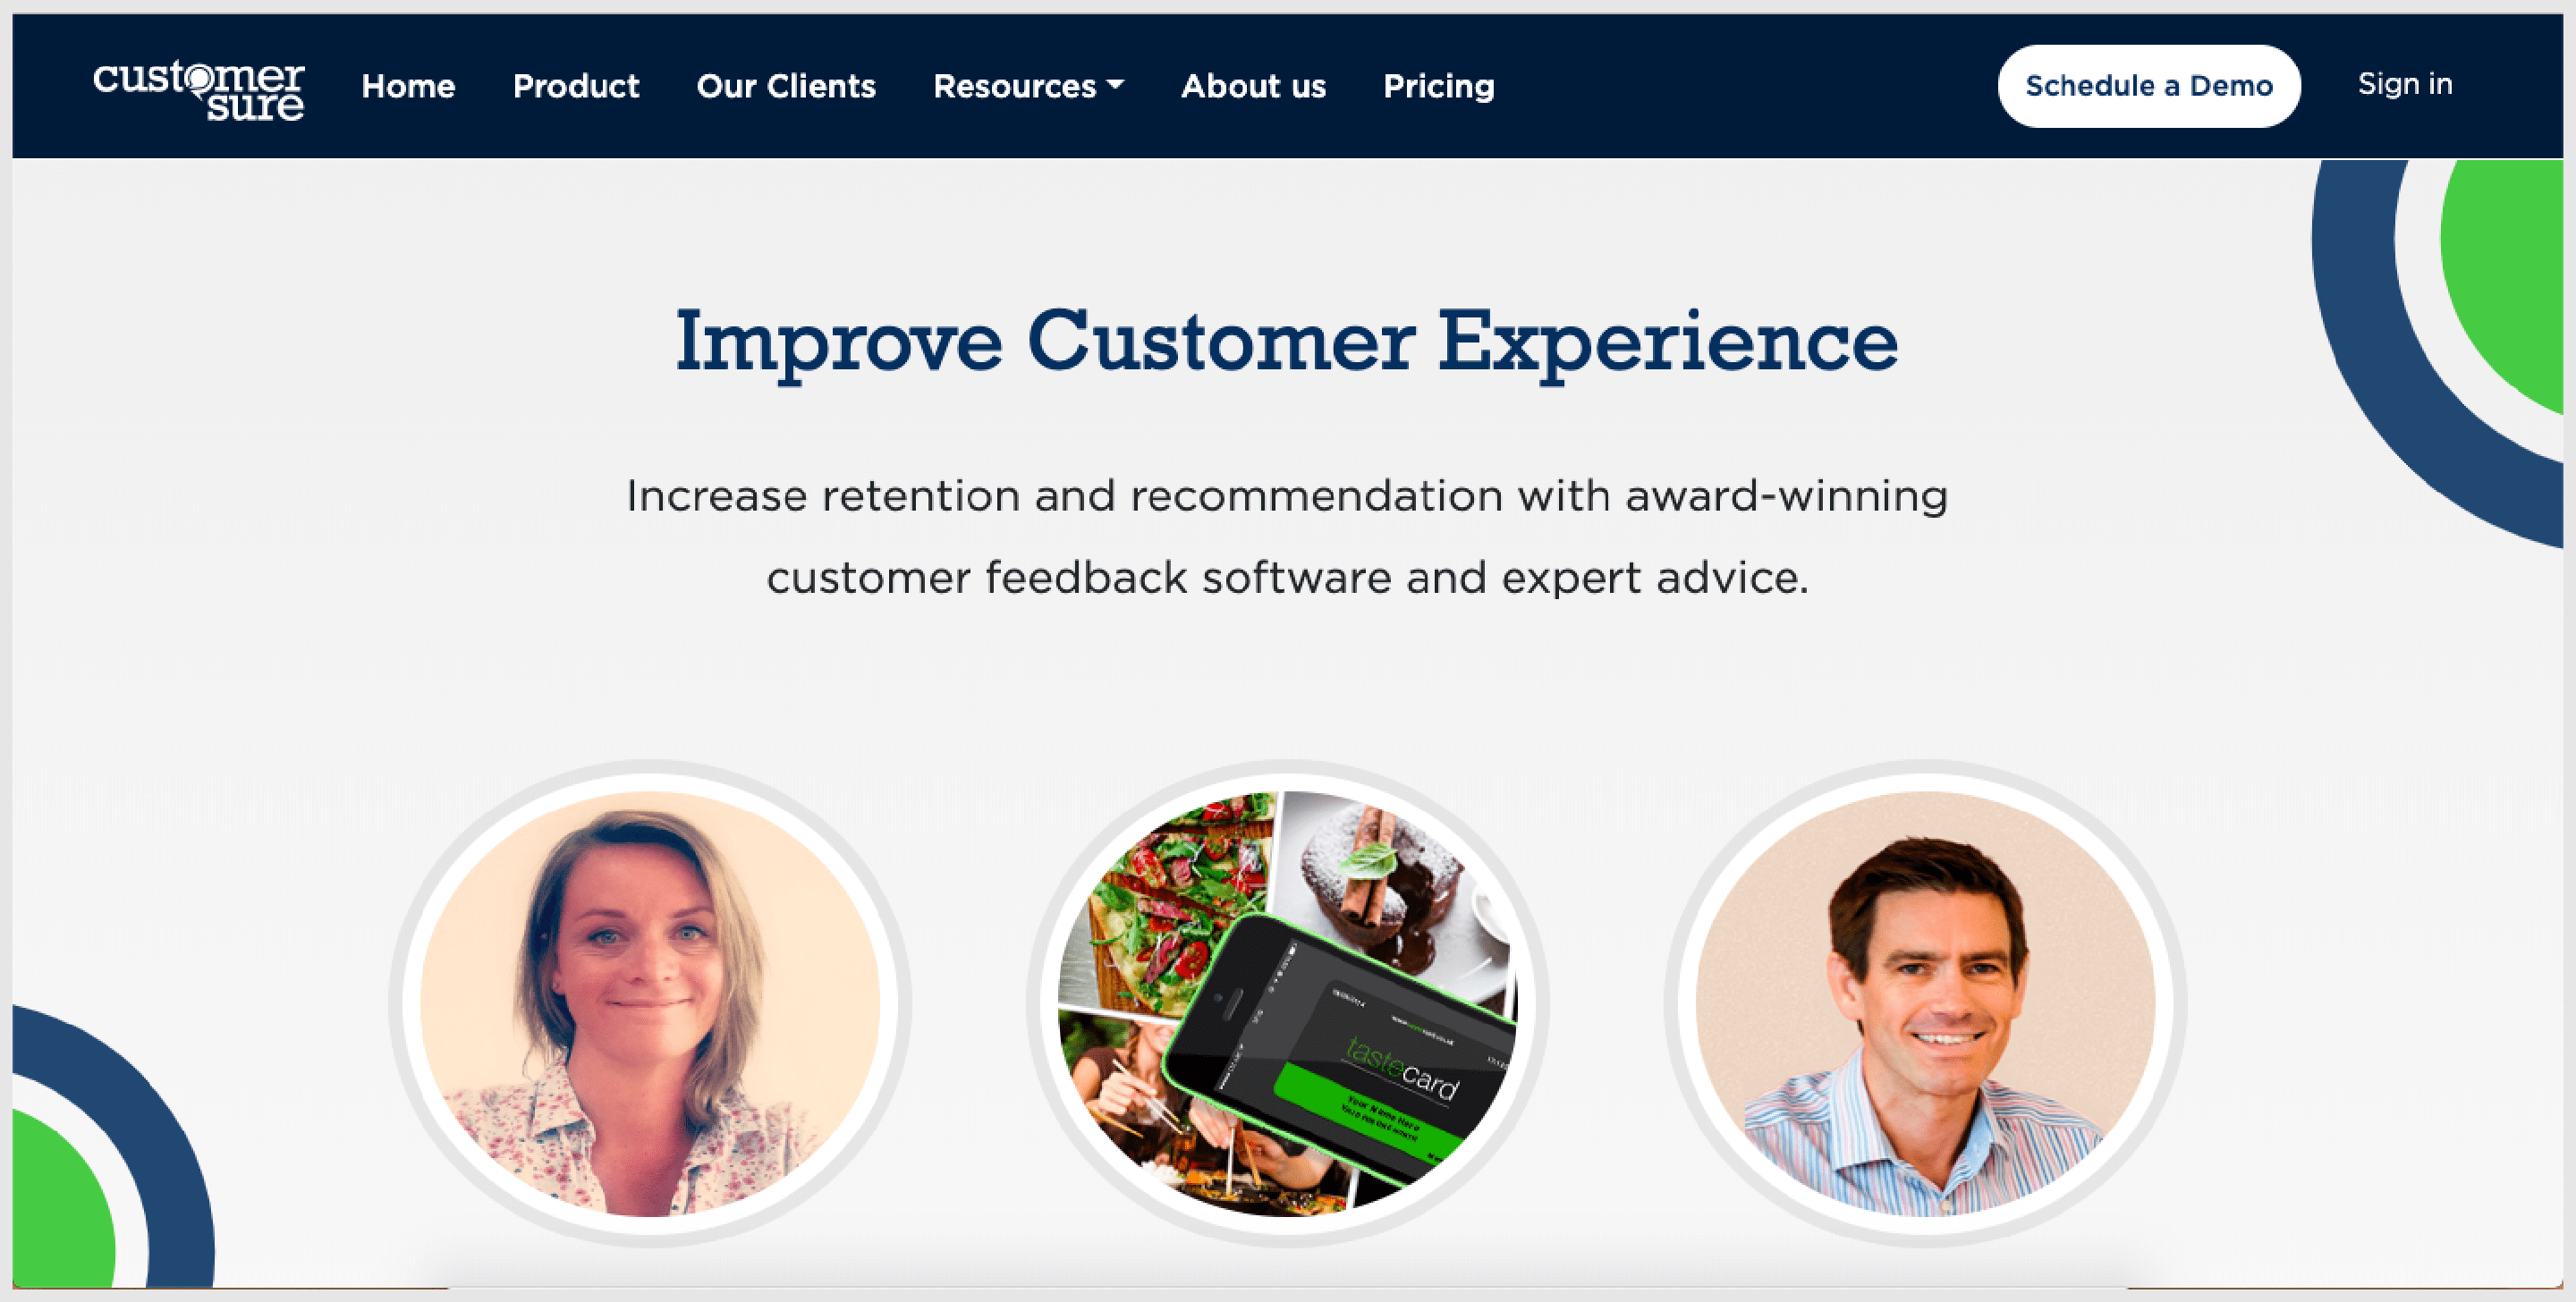 CustomerSure is a customer feedback & follow-up tool that aims to get businesses closer to their target customers.